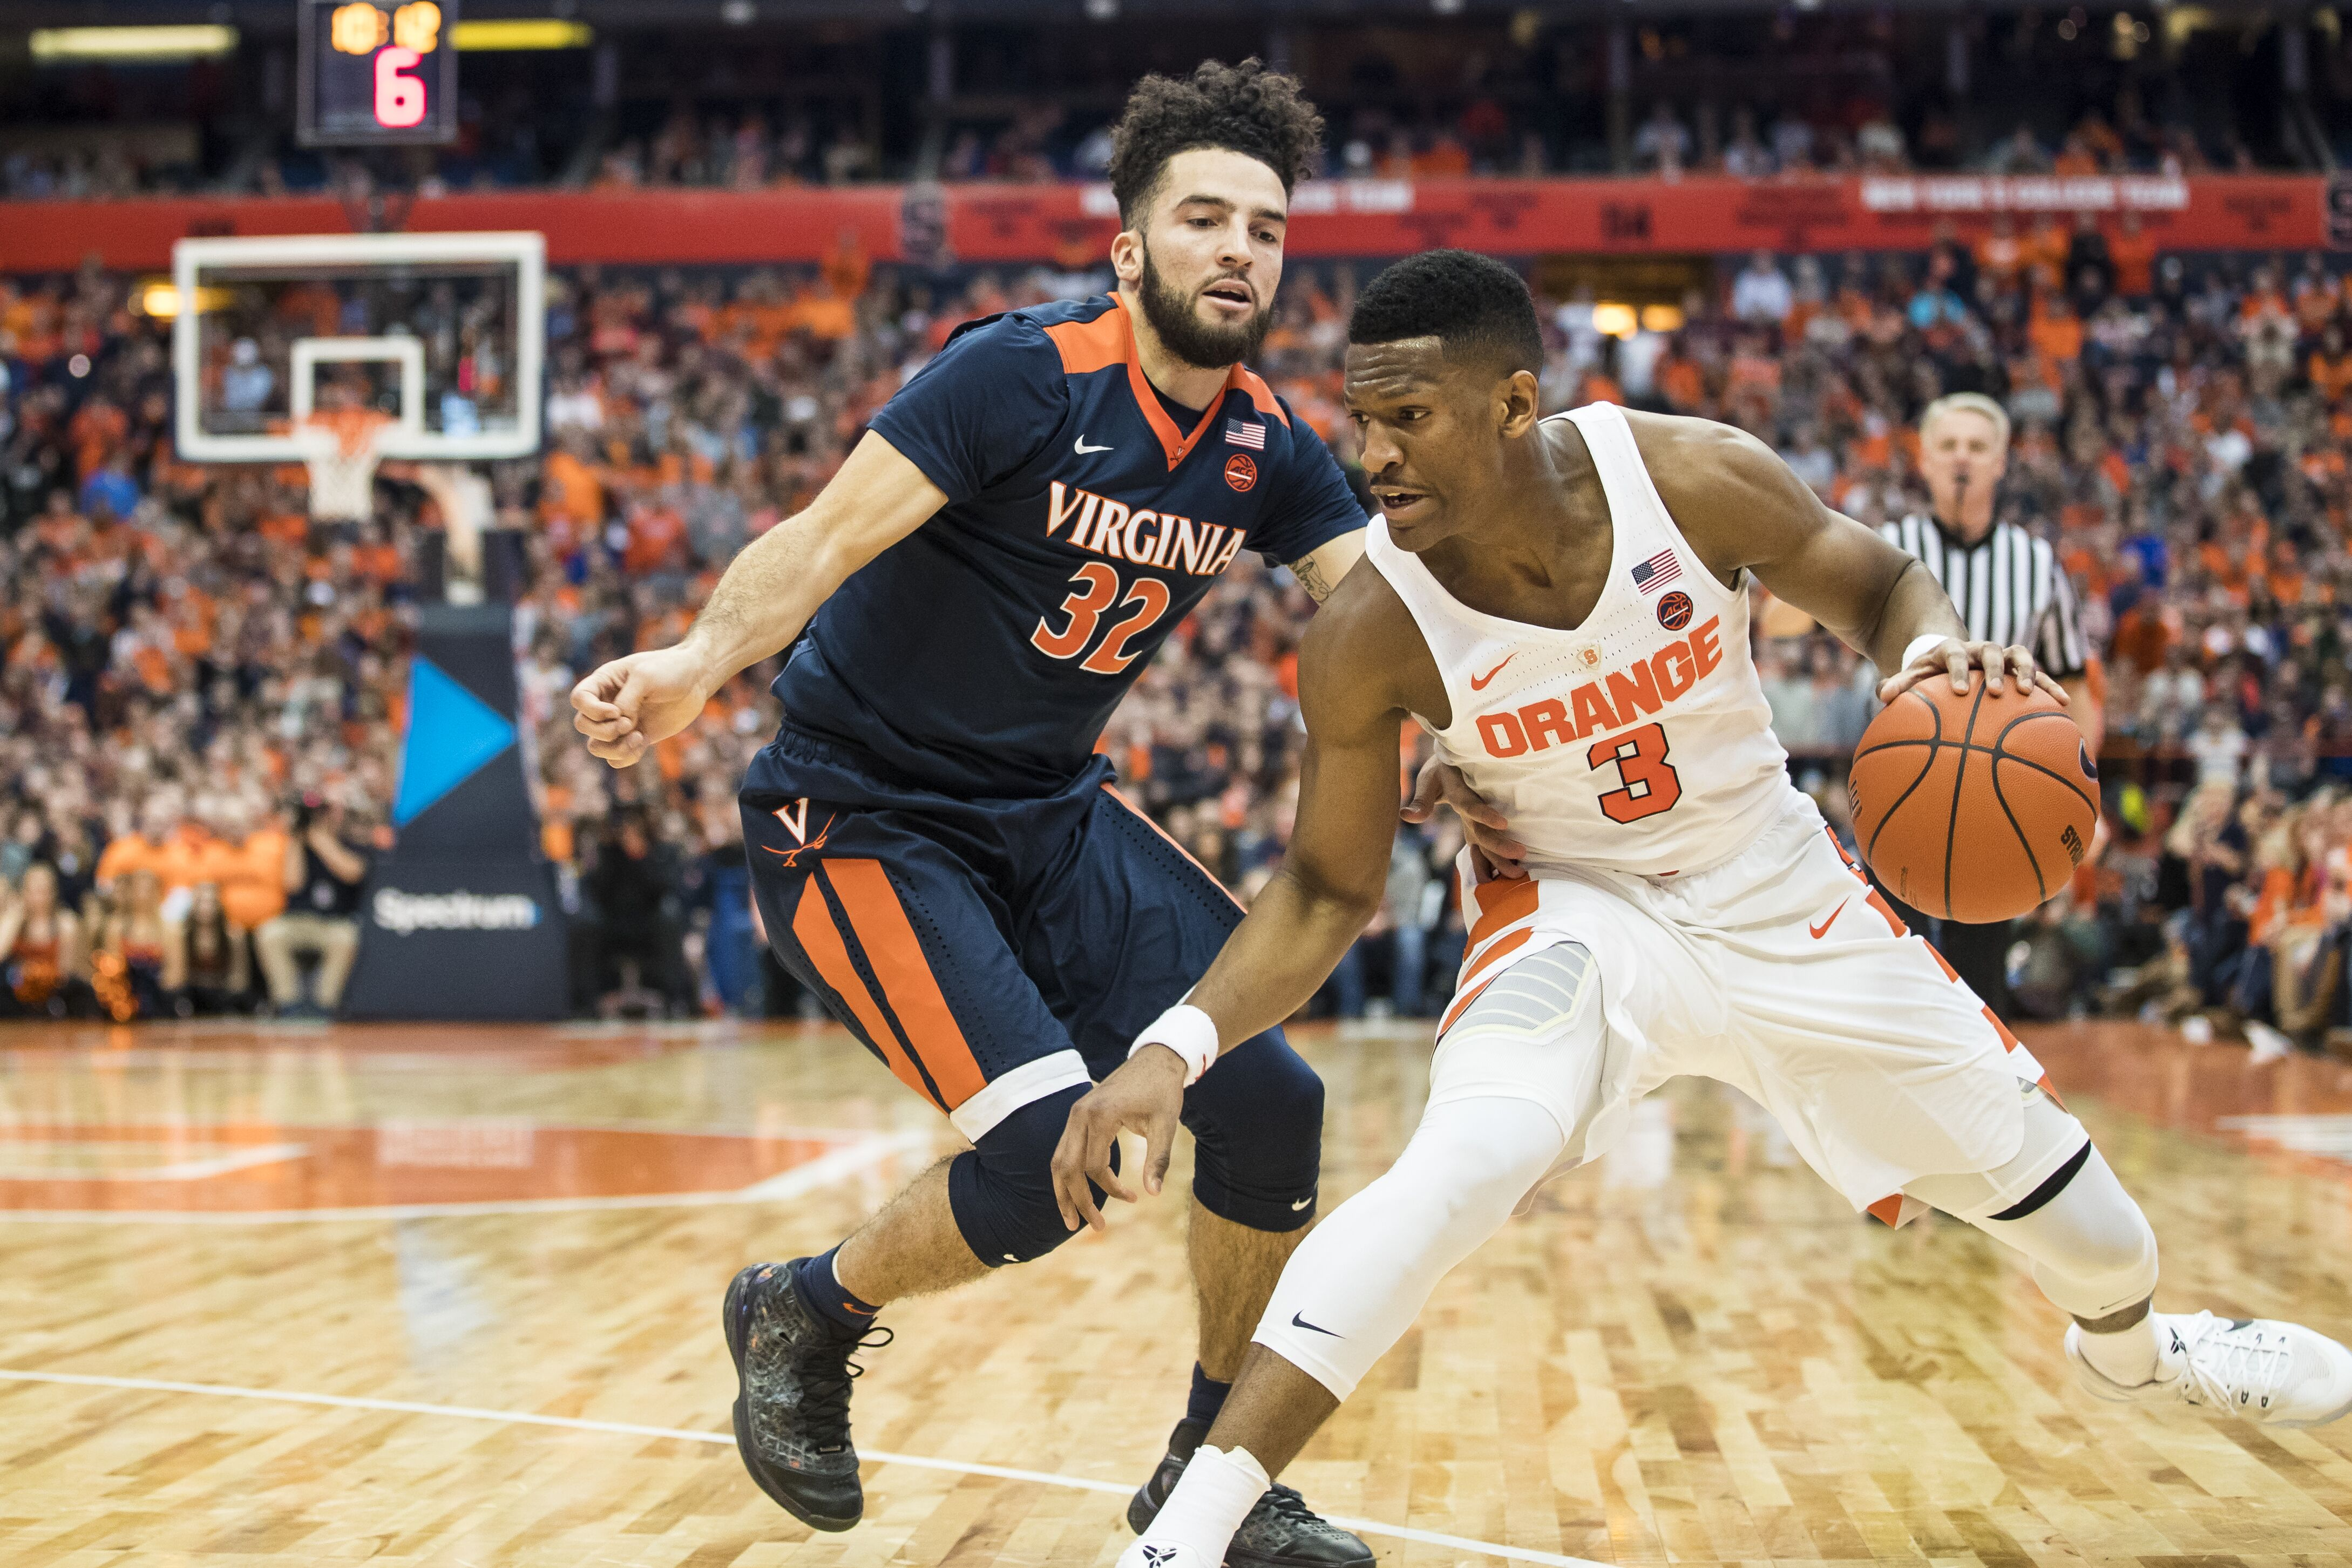 633815982-virginia-v-syracuse.jpg